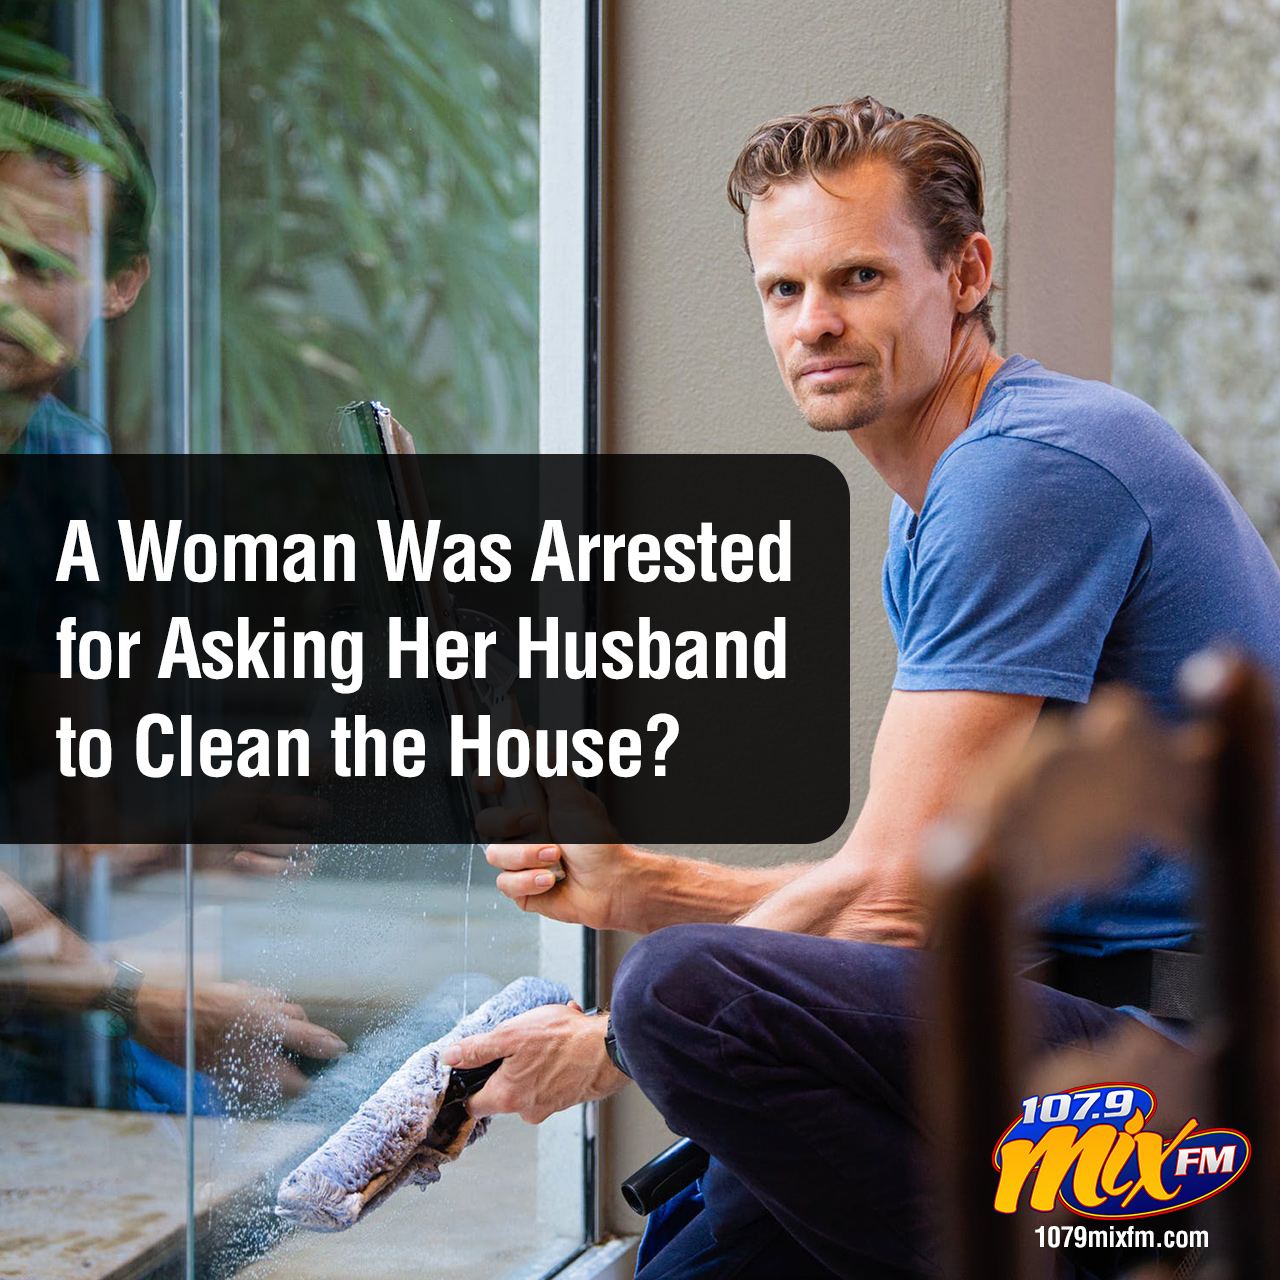 A Woman Was Arrested for Asking Her Husband to Clean the House?